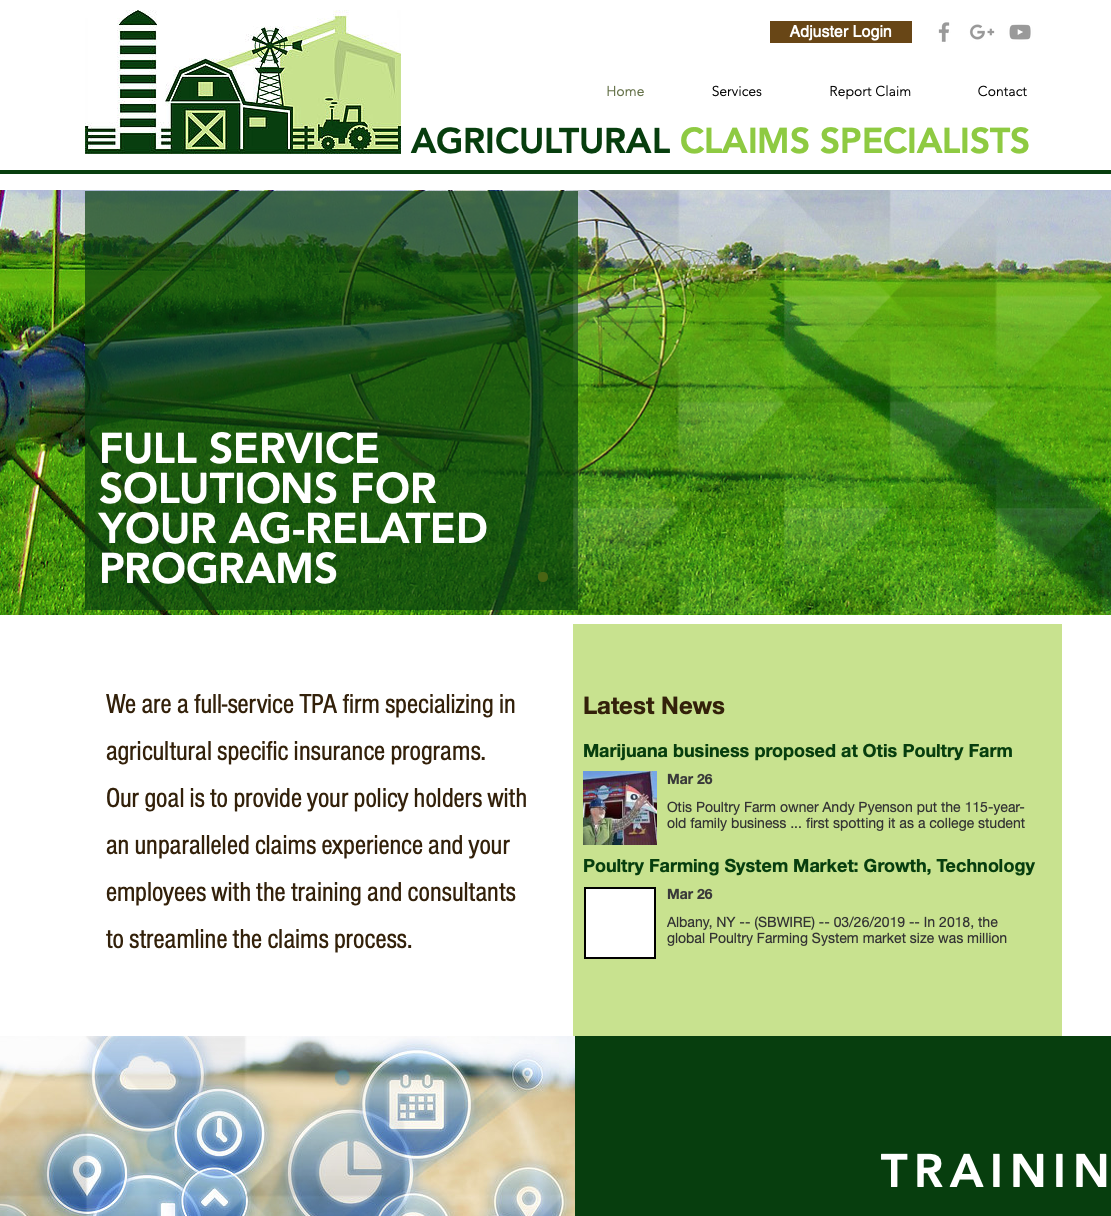 AgClaimsSpecialists